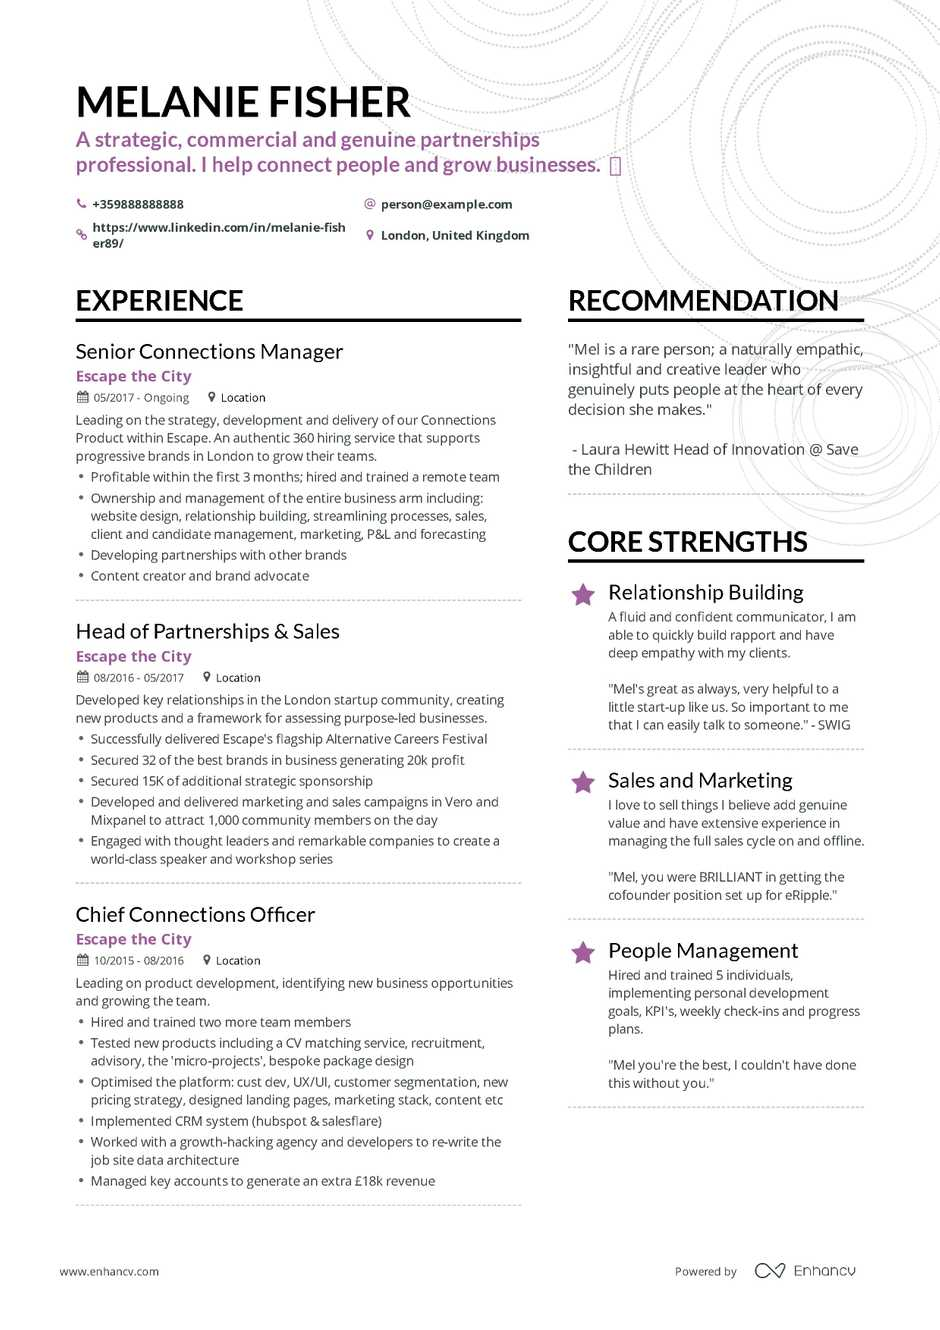 Example Professional Resume Career Change Resume Example And Guide For 2019